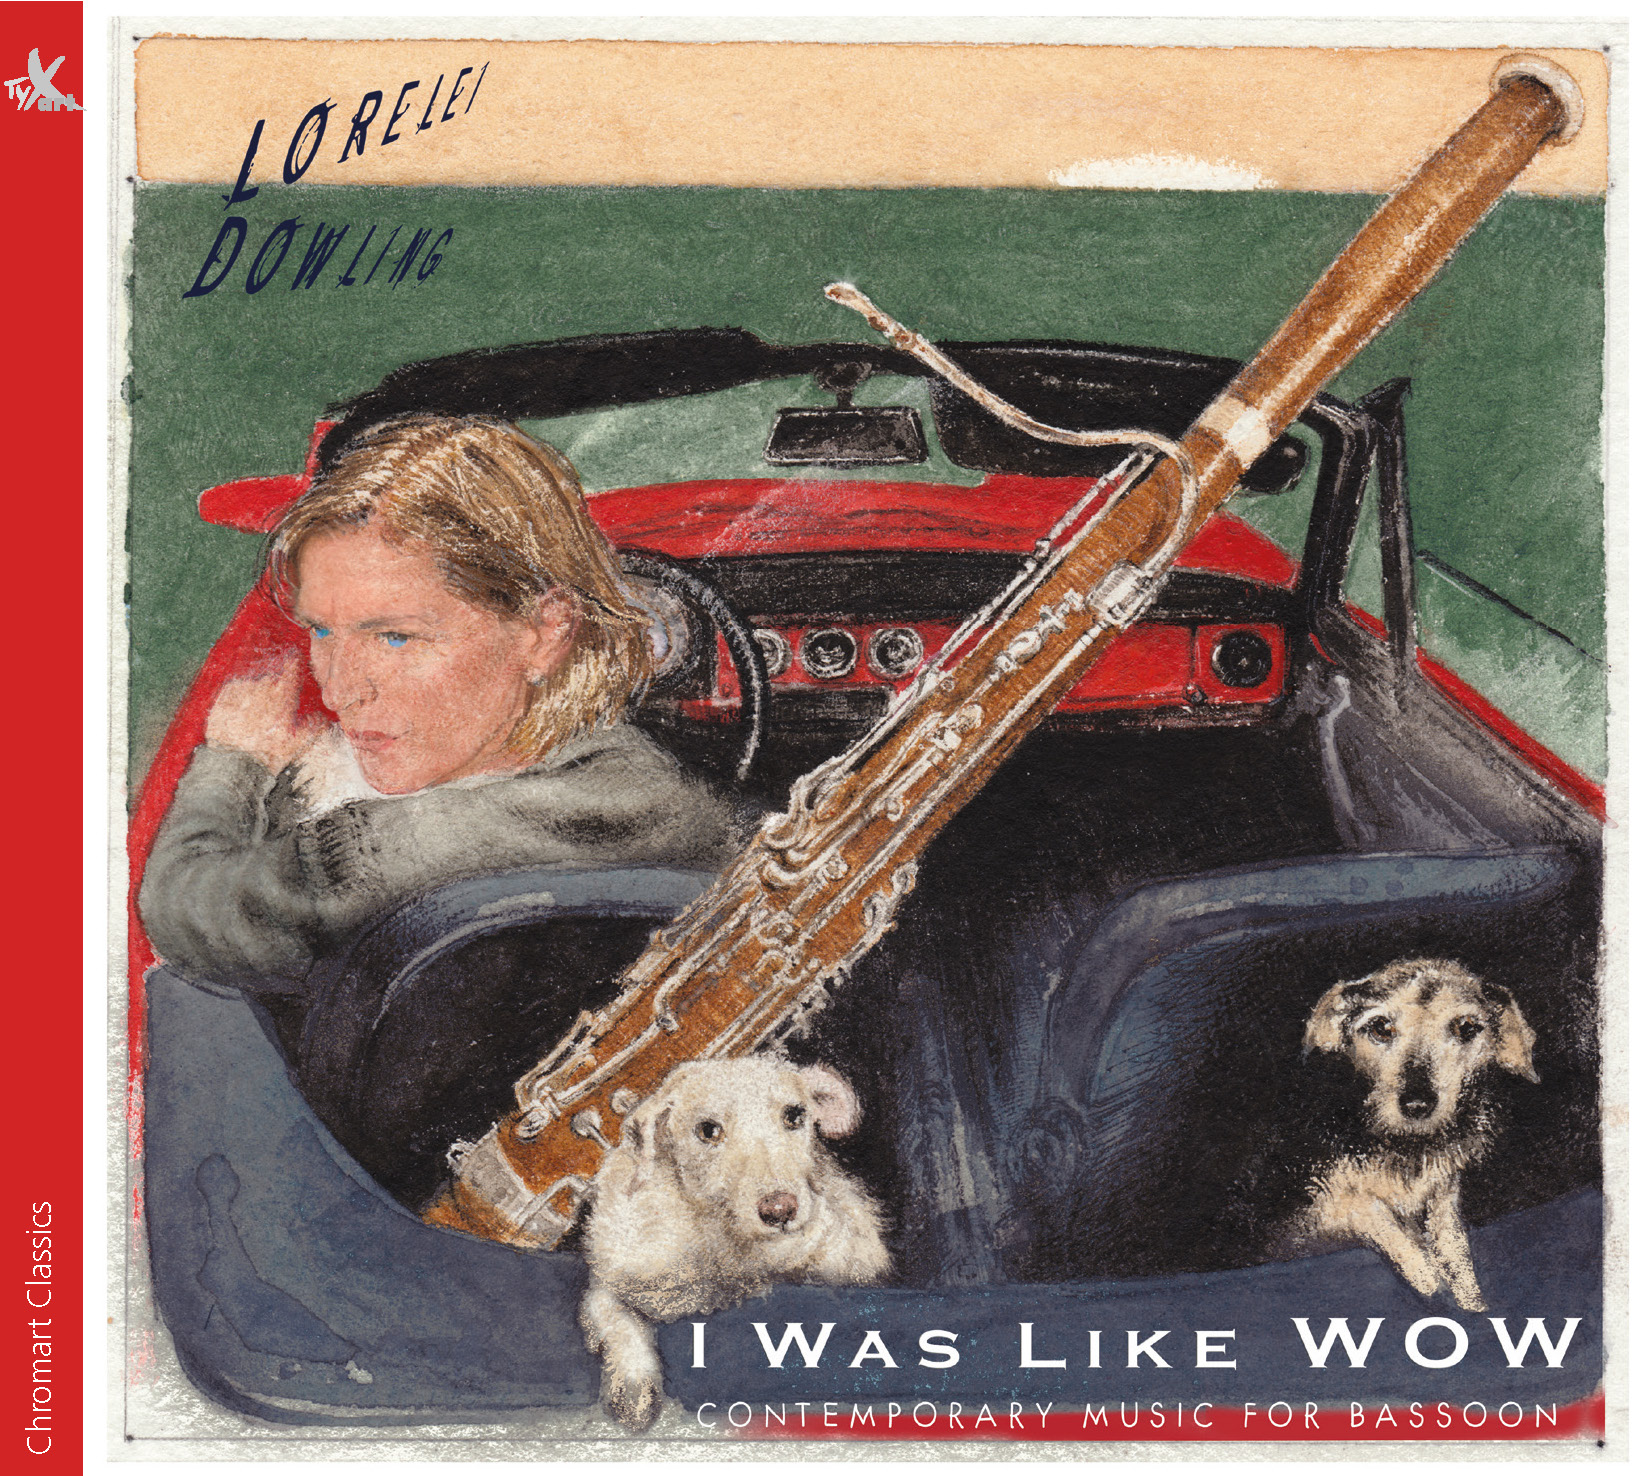 I was like WOW - Lorelei Dowling, Fagott - & Ensembles